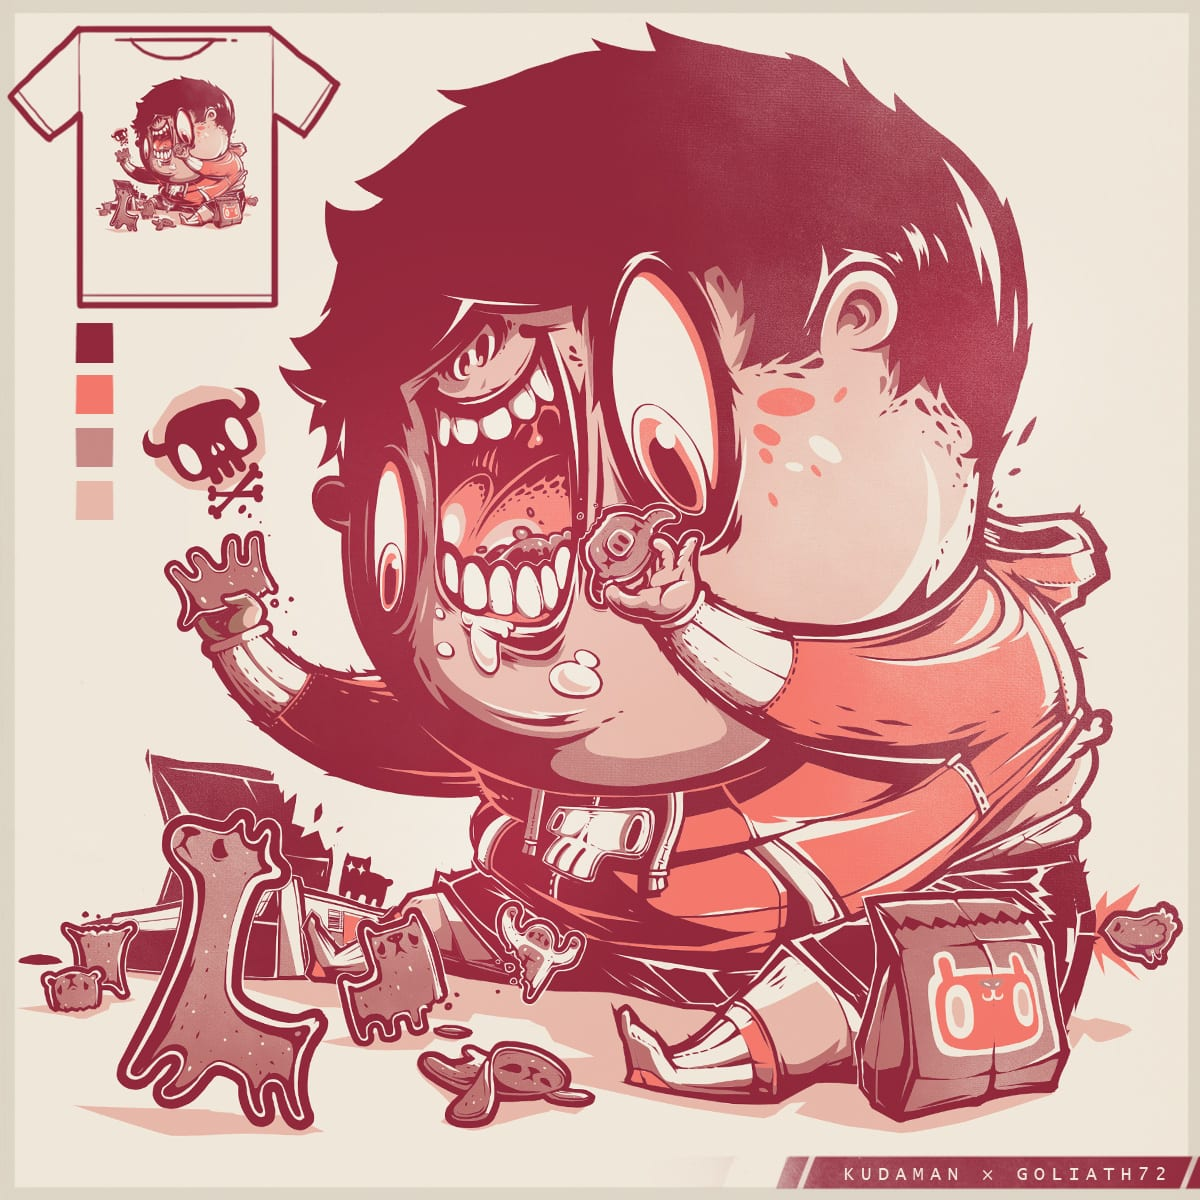 Cookie Prey by Kudaman and goliath72 on Threadless